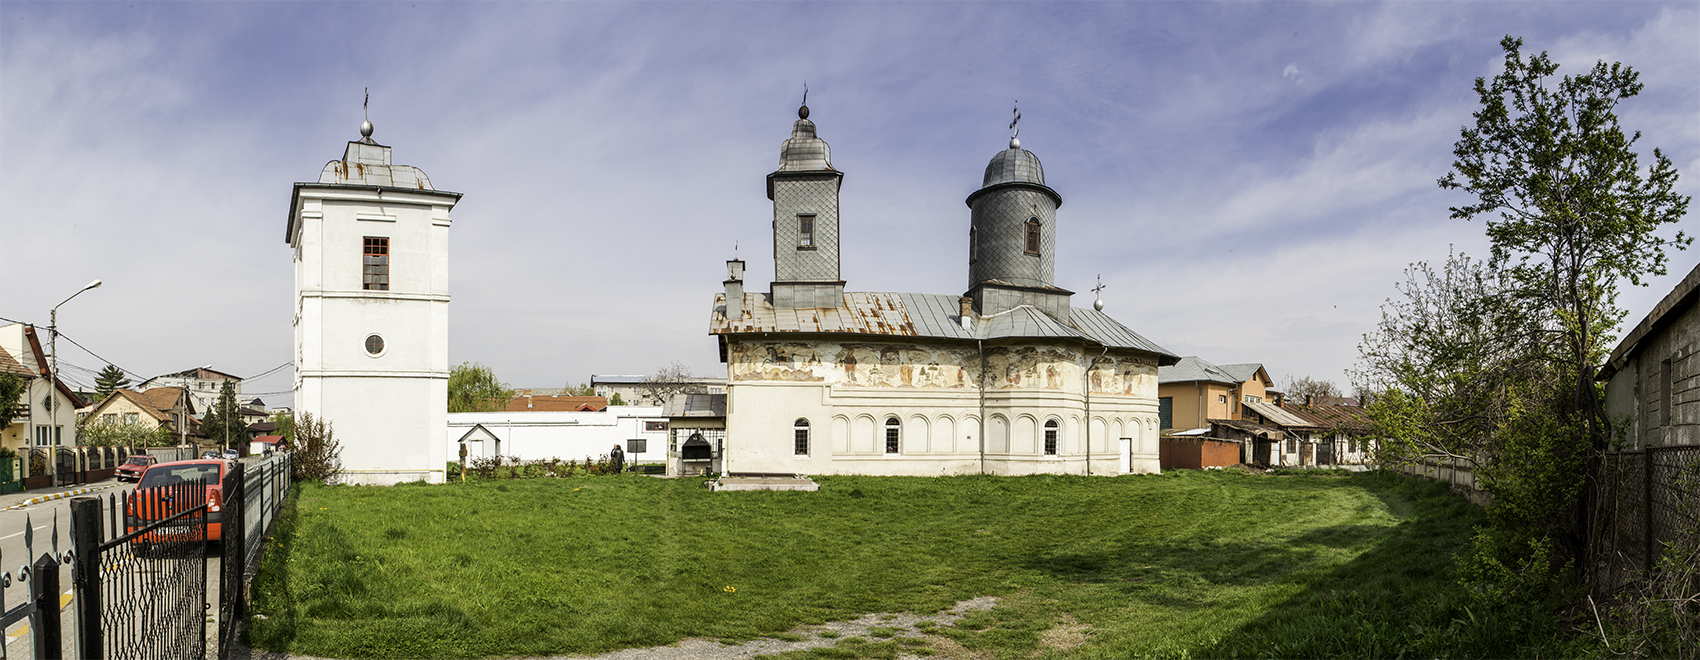 The Church of St. Nicholas (Simuleasa Church)